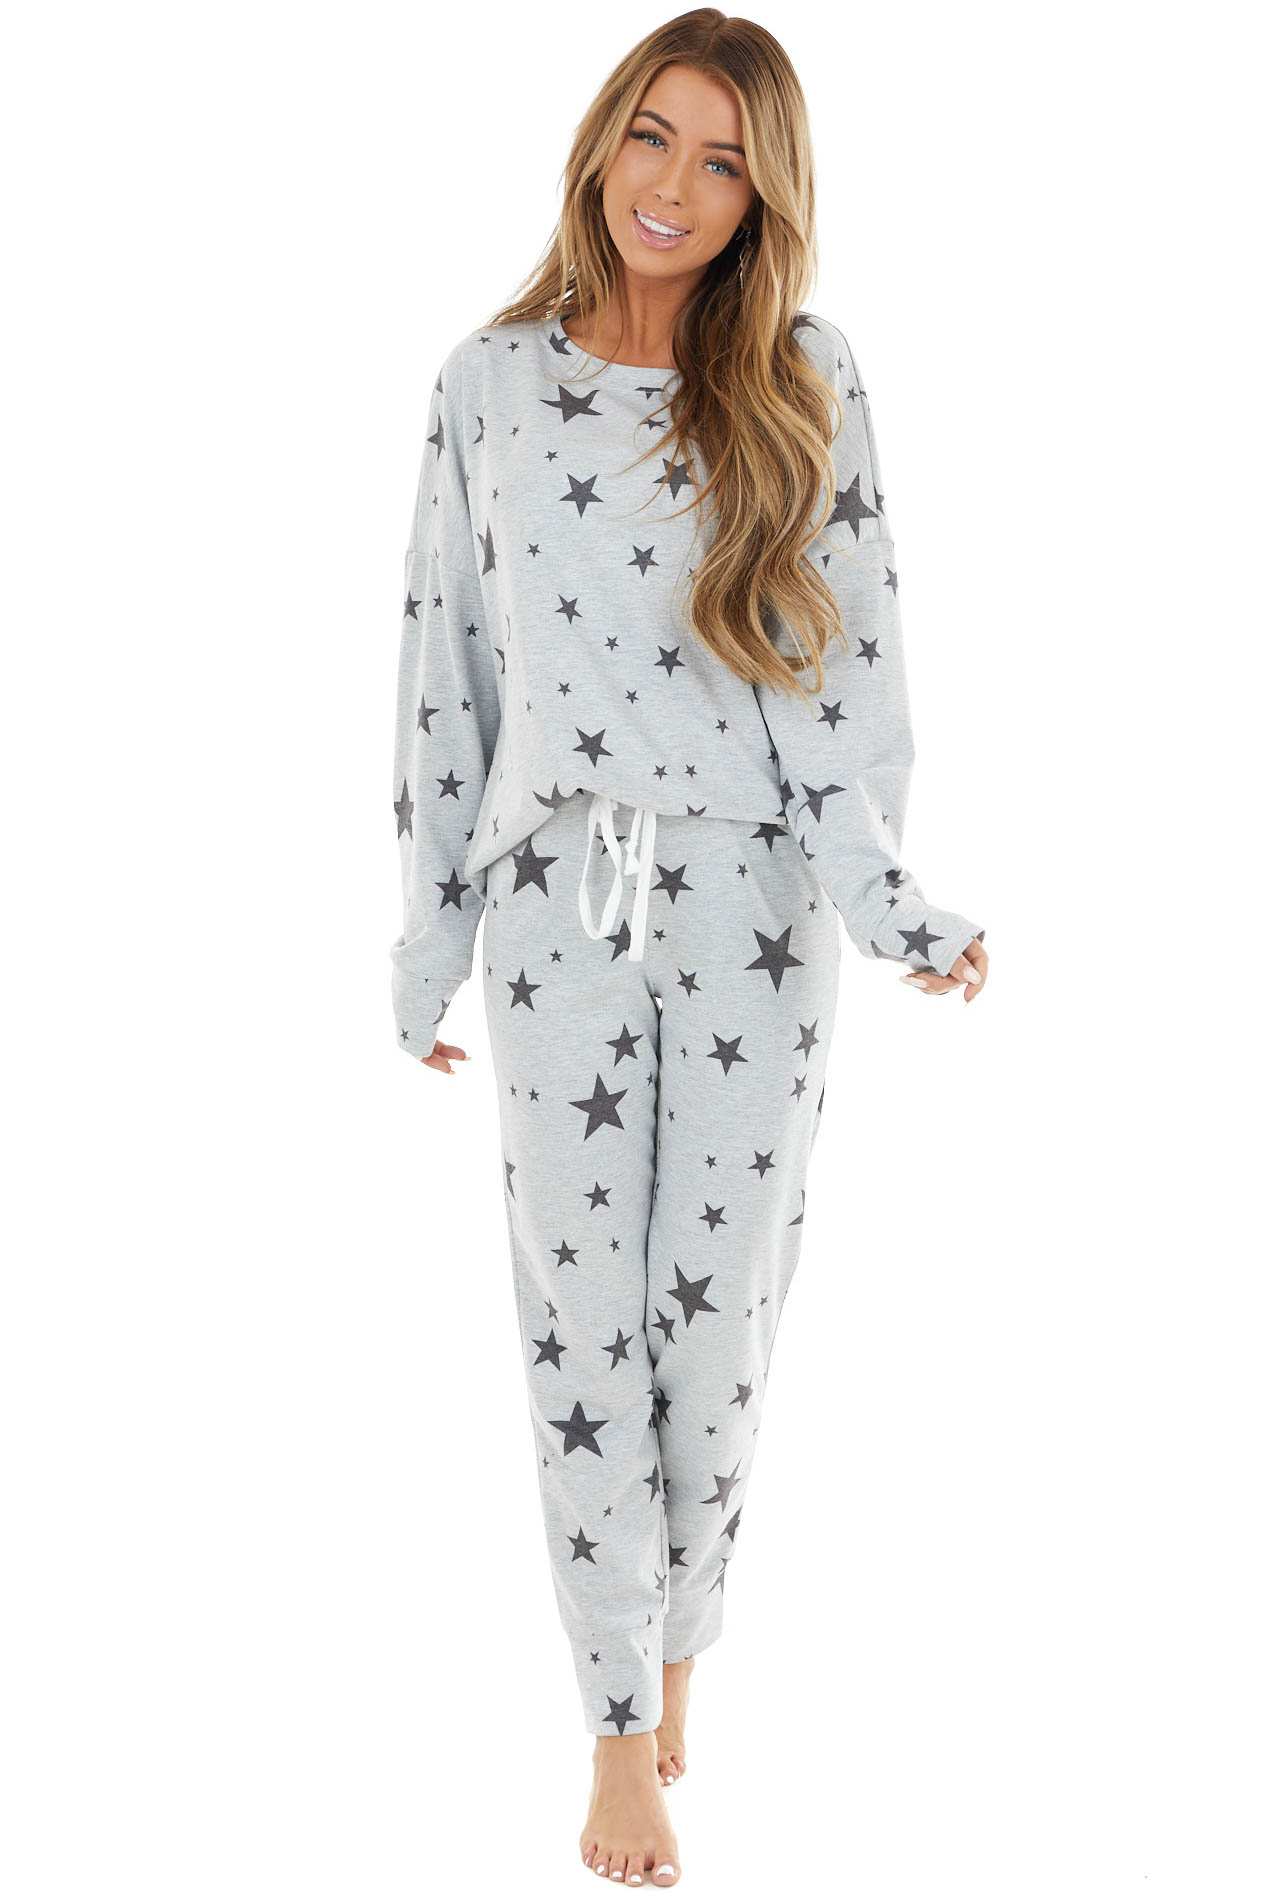 Heather Grey Star Print Long Sleeve Top and Jogger Pant Set